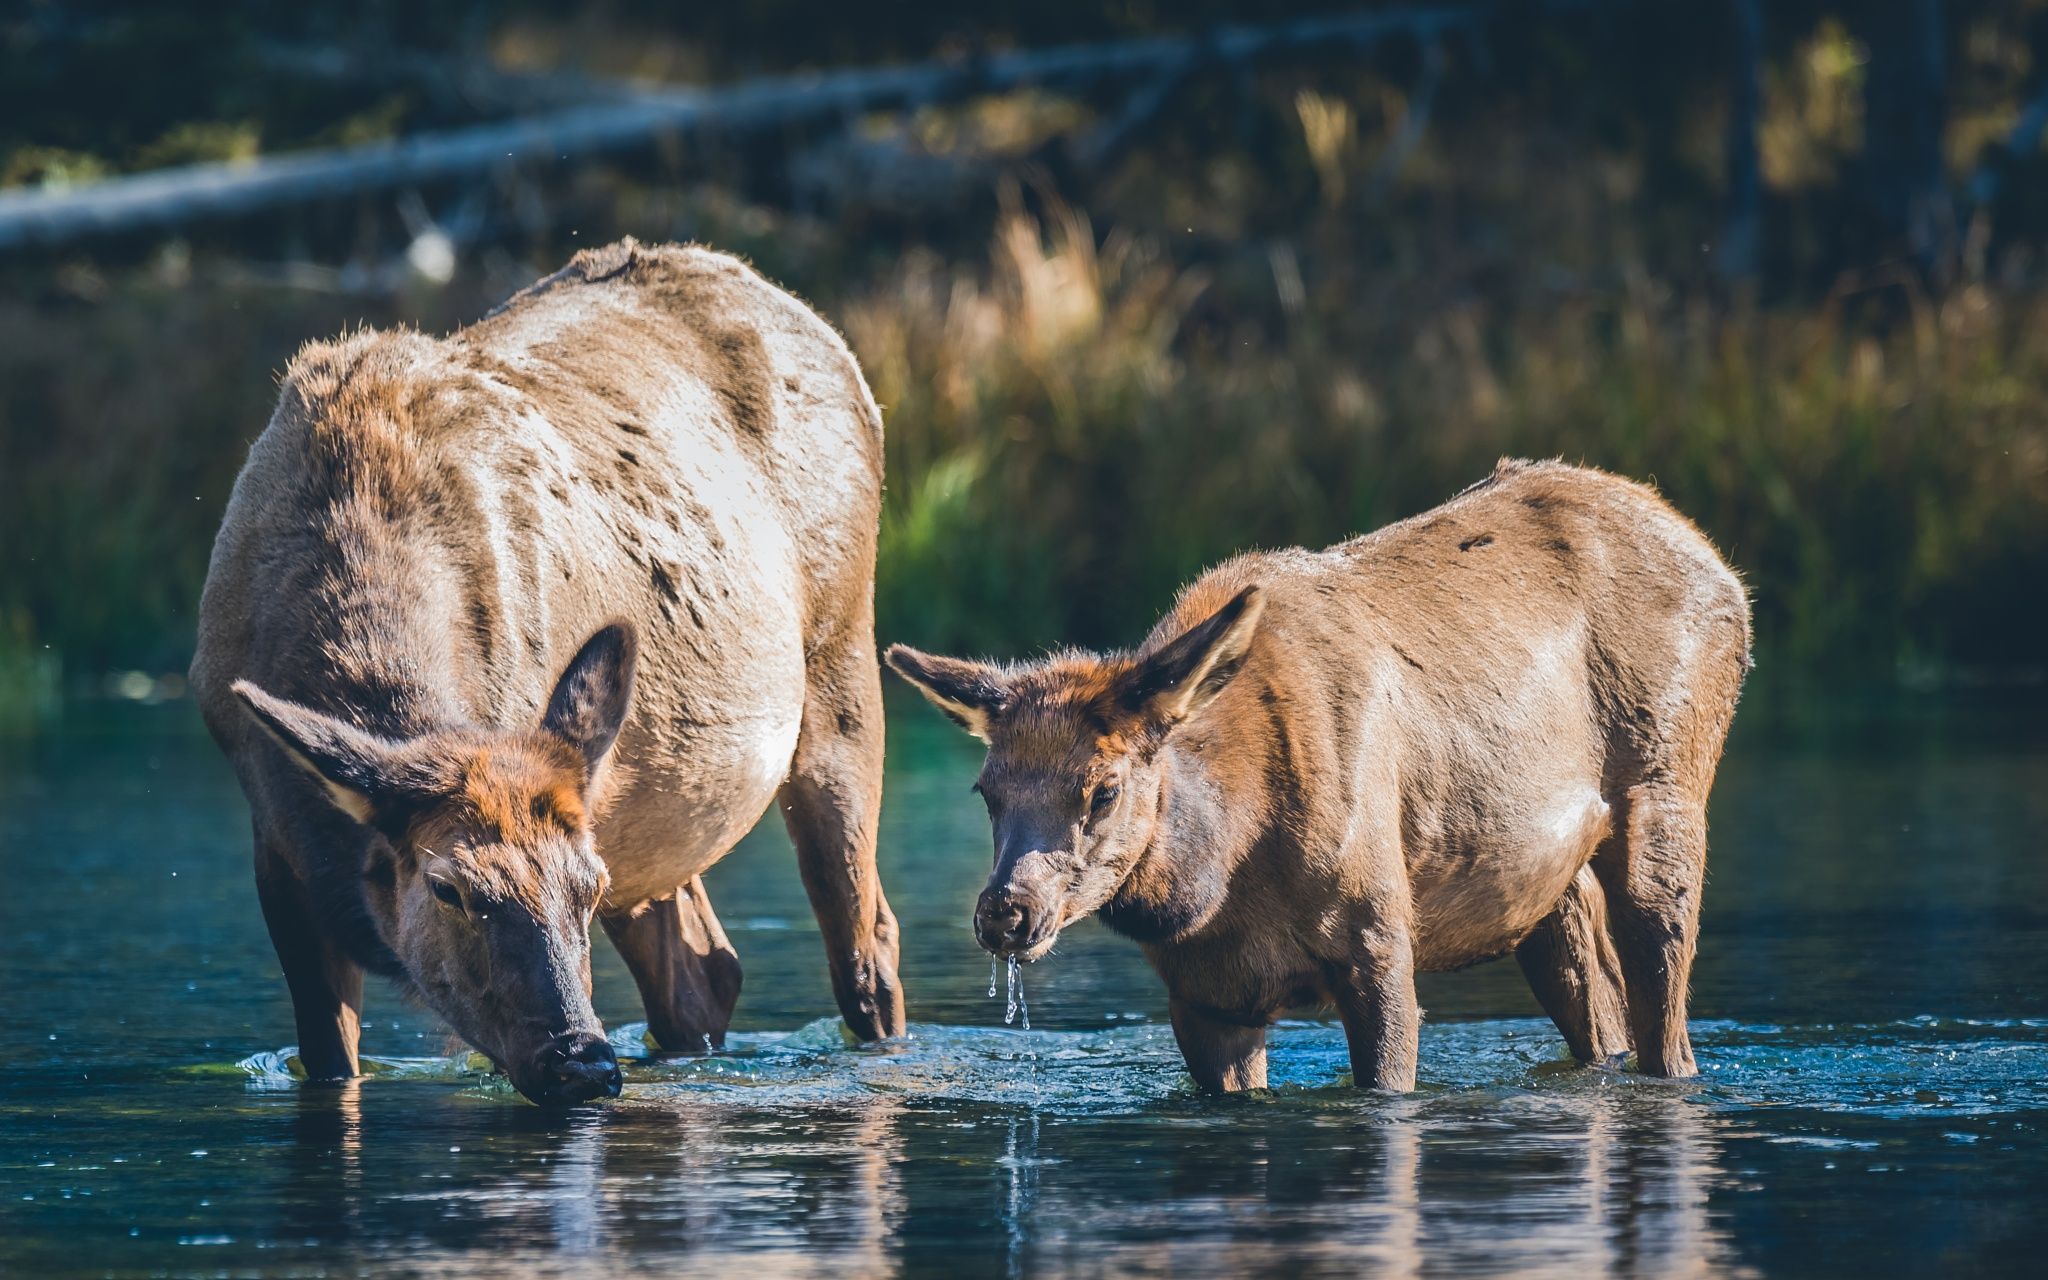 Cool Water by richardhorstphotography